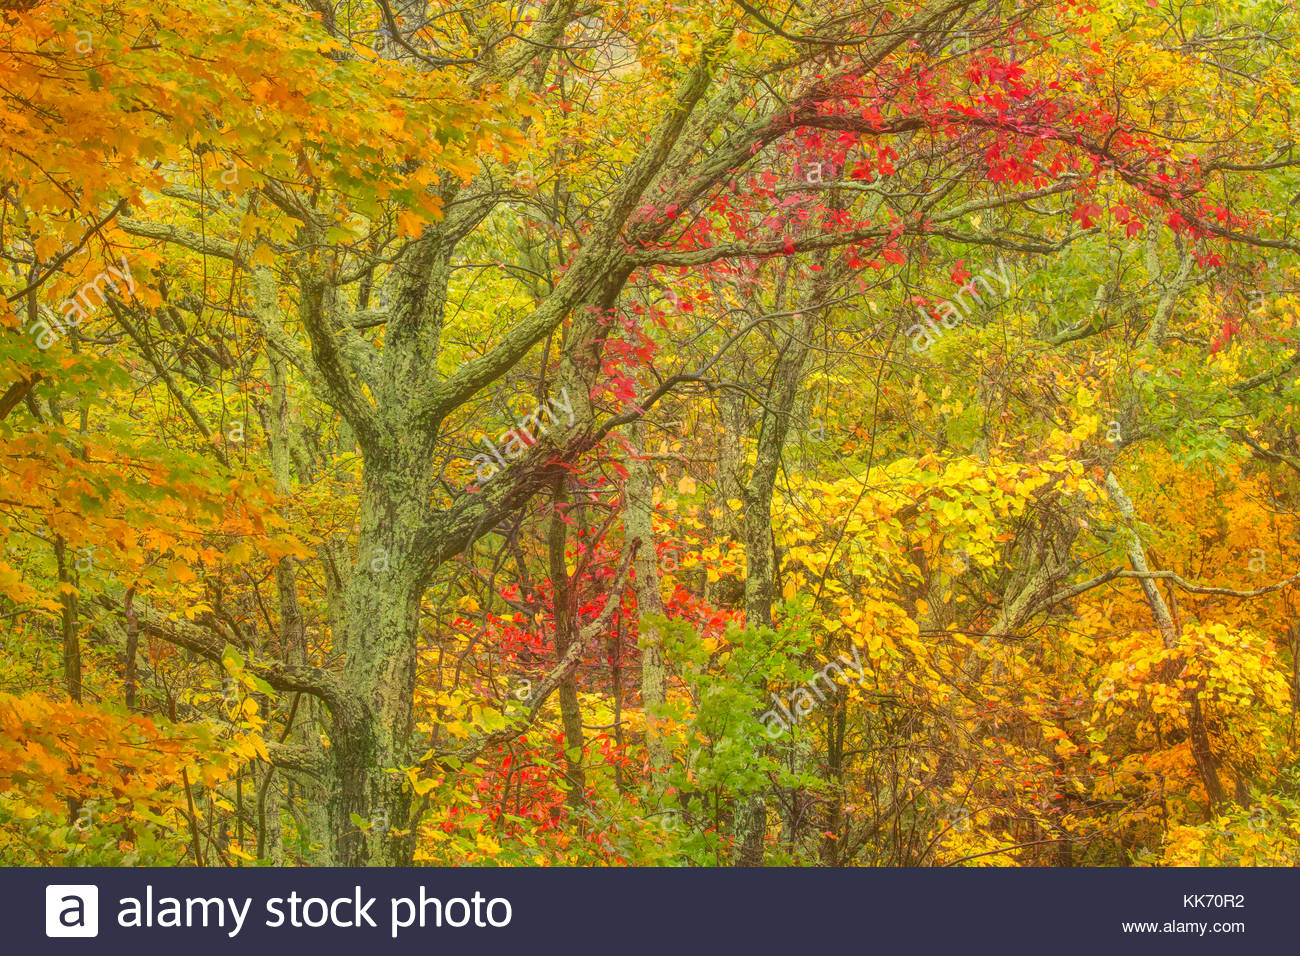 Trees in the Monongahela National Forest near Maysville, West Virginia, display the full spectrum of autumn colors Stock Photo